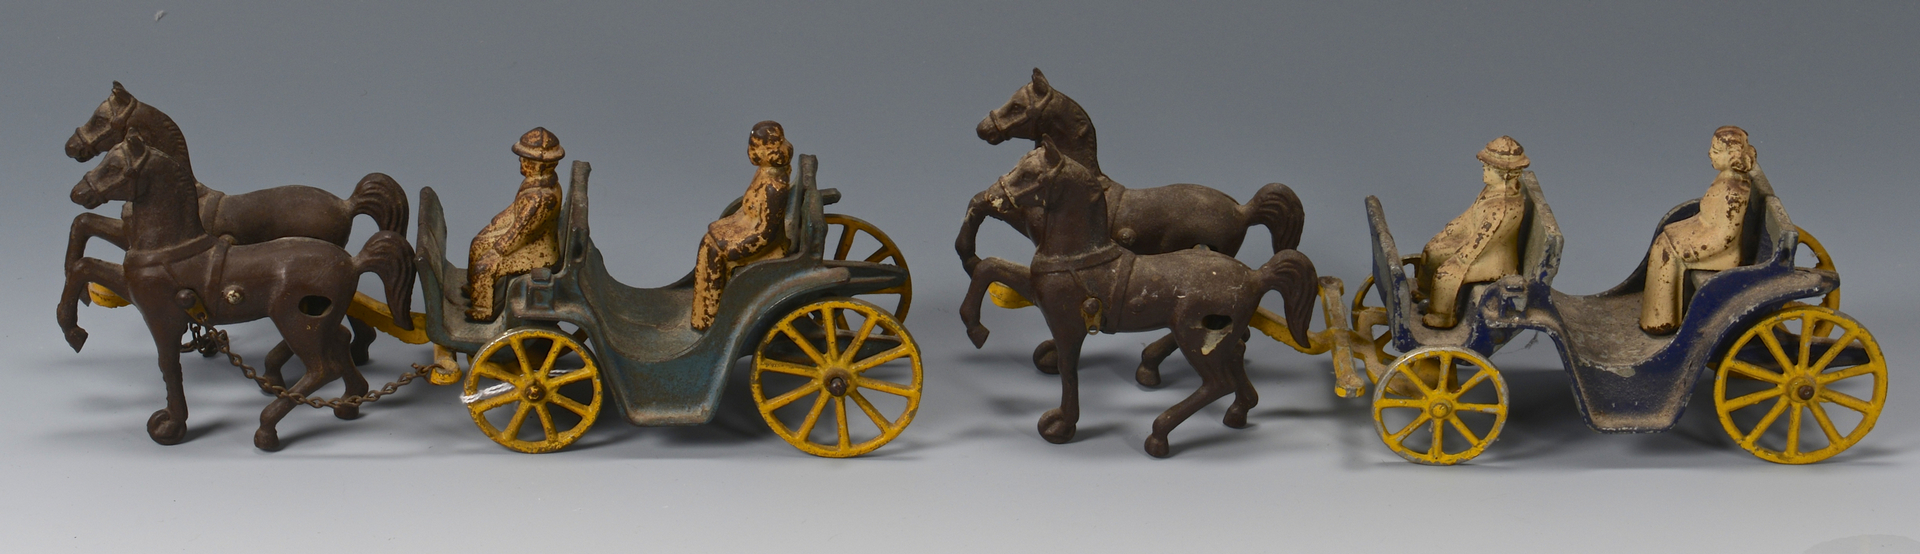 Lot 639: Cast Iron Wagons & Buggies, 5 total